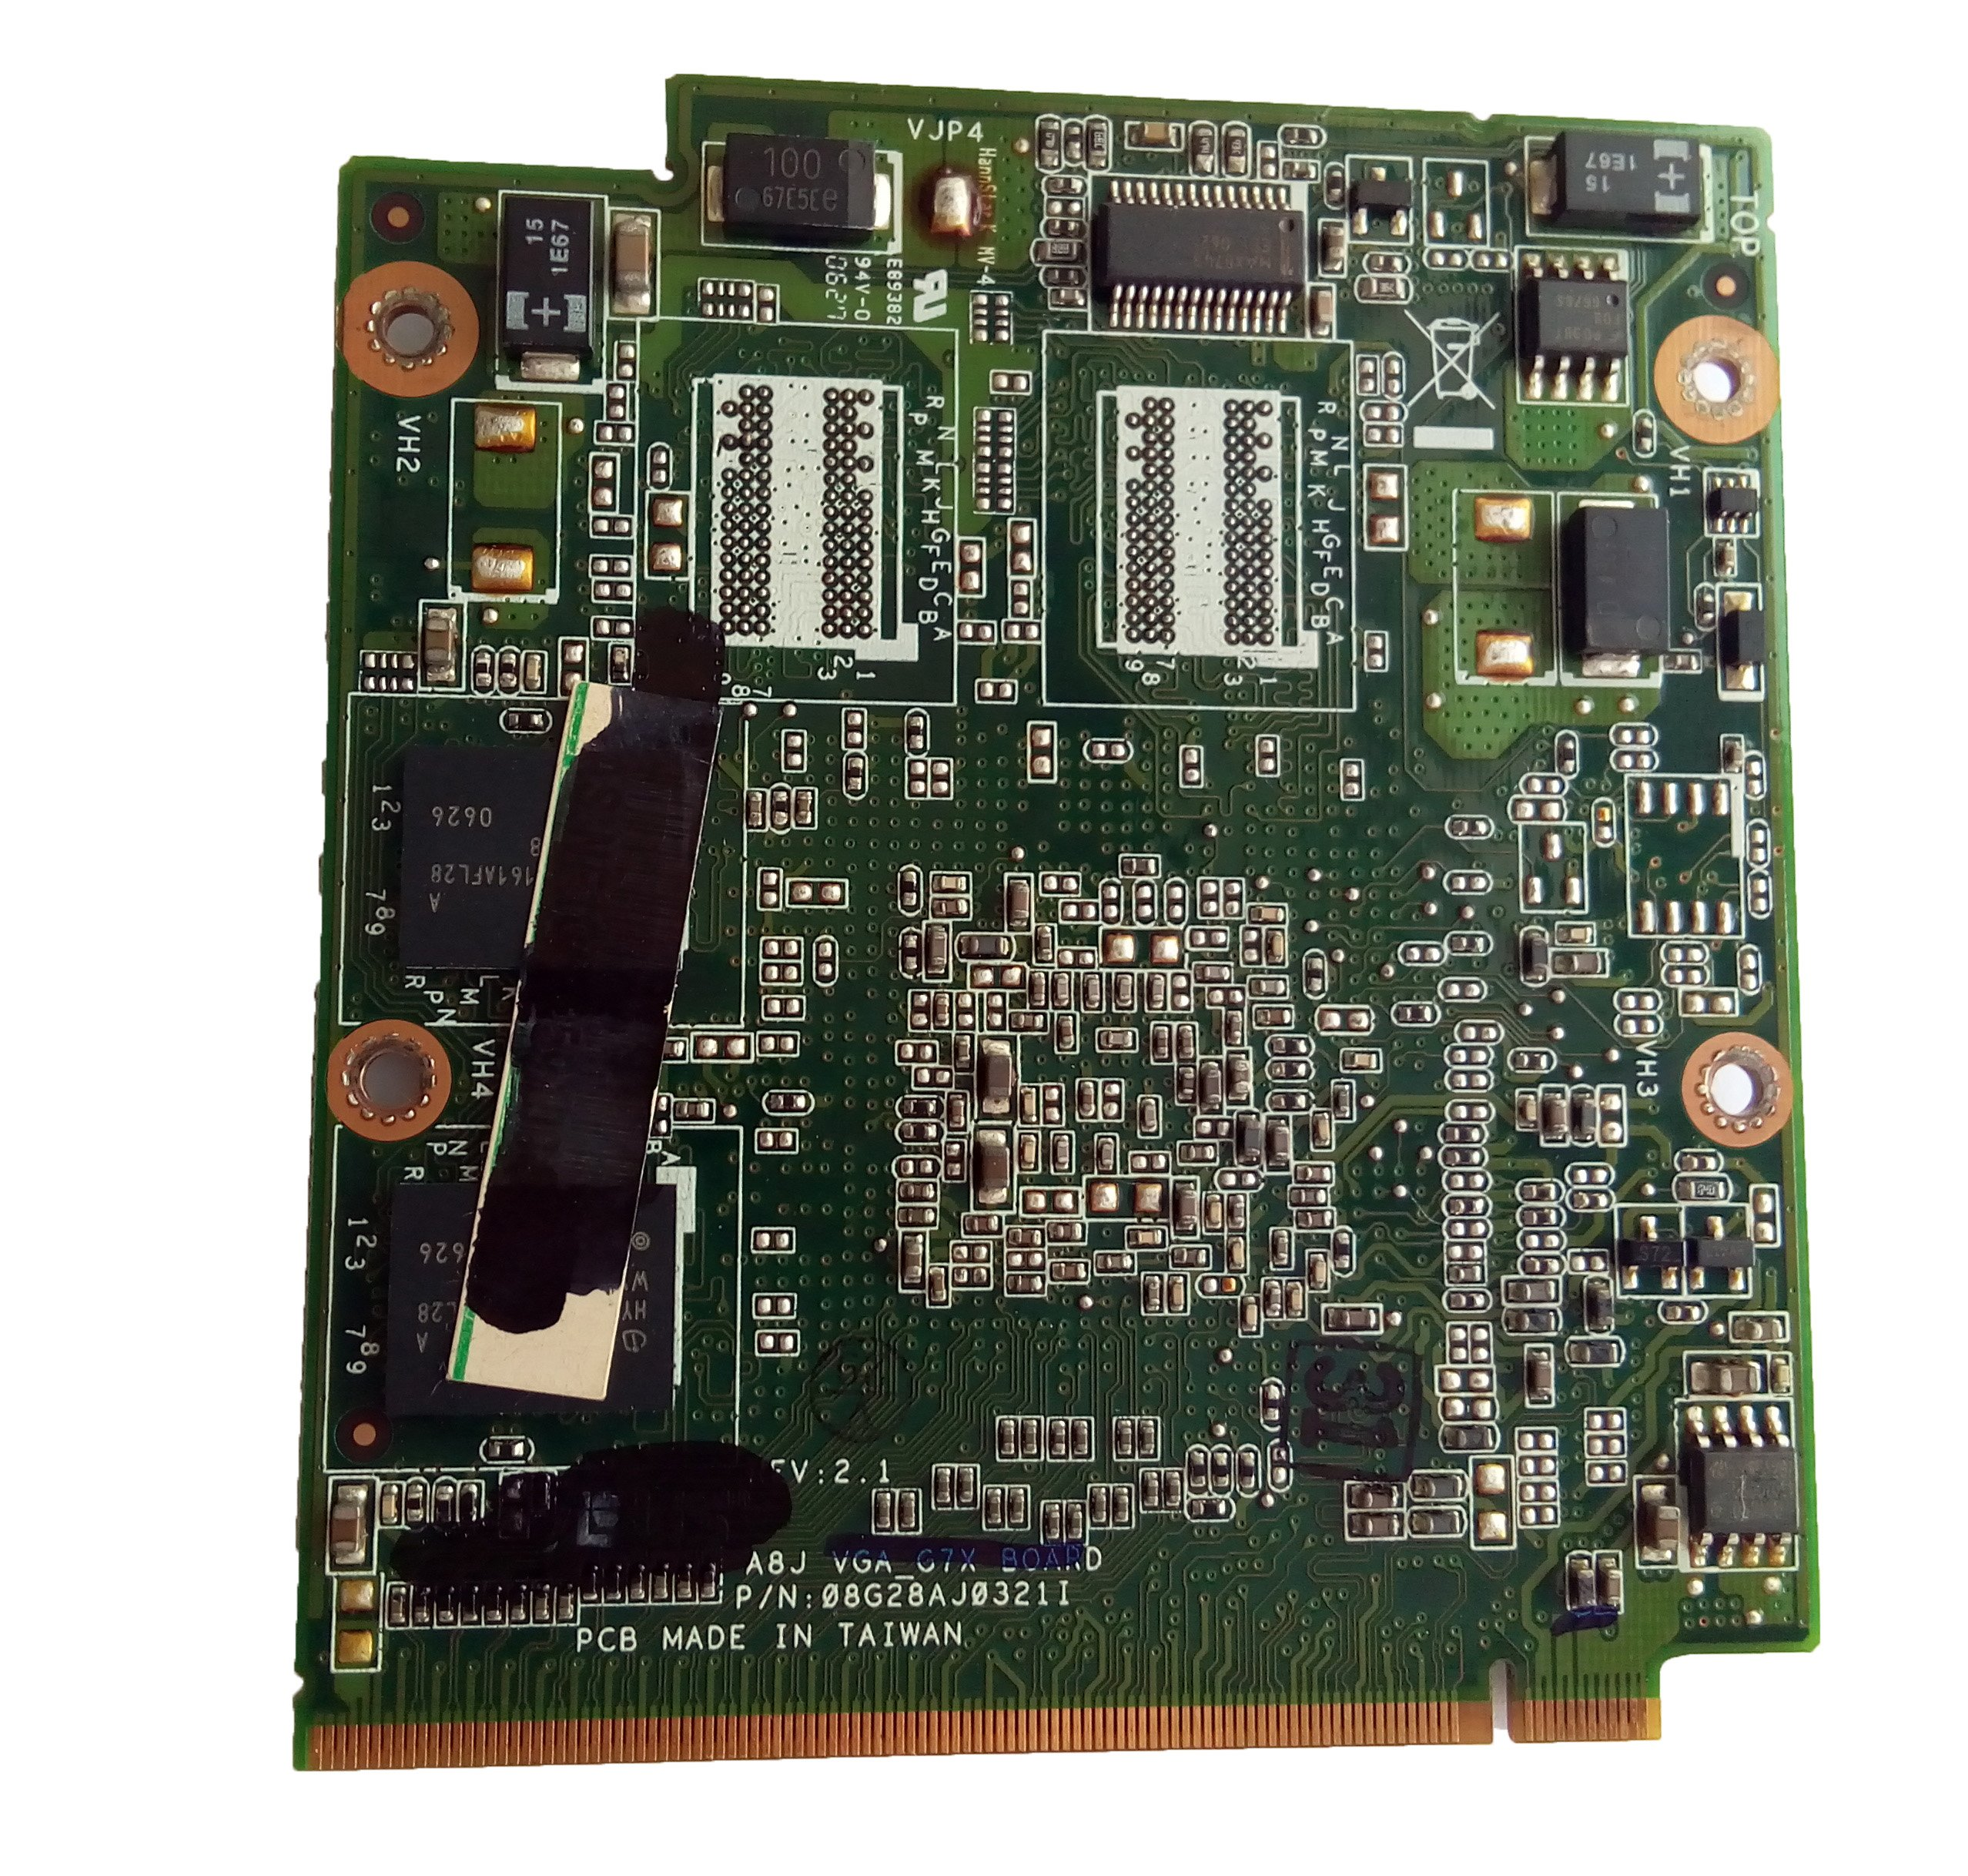 128M Laptop VGA Graphic Card GF-G07300-B-N-AB for Asus A8JC Laptop 60-NF8VG2000-B02 by StylusPen (Image #2)